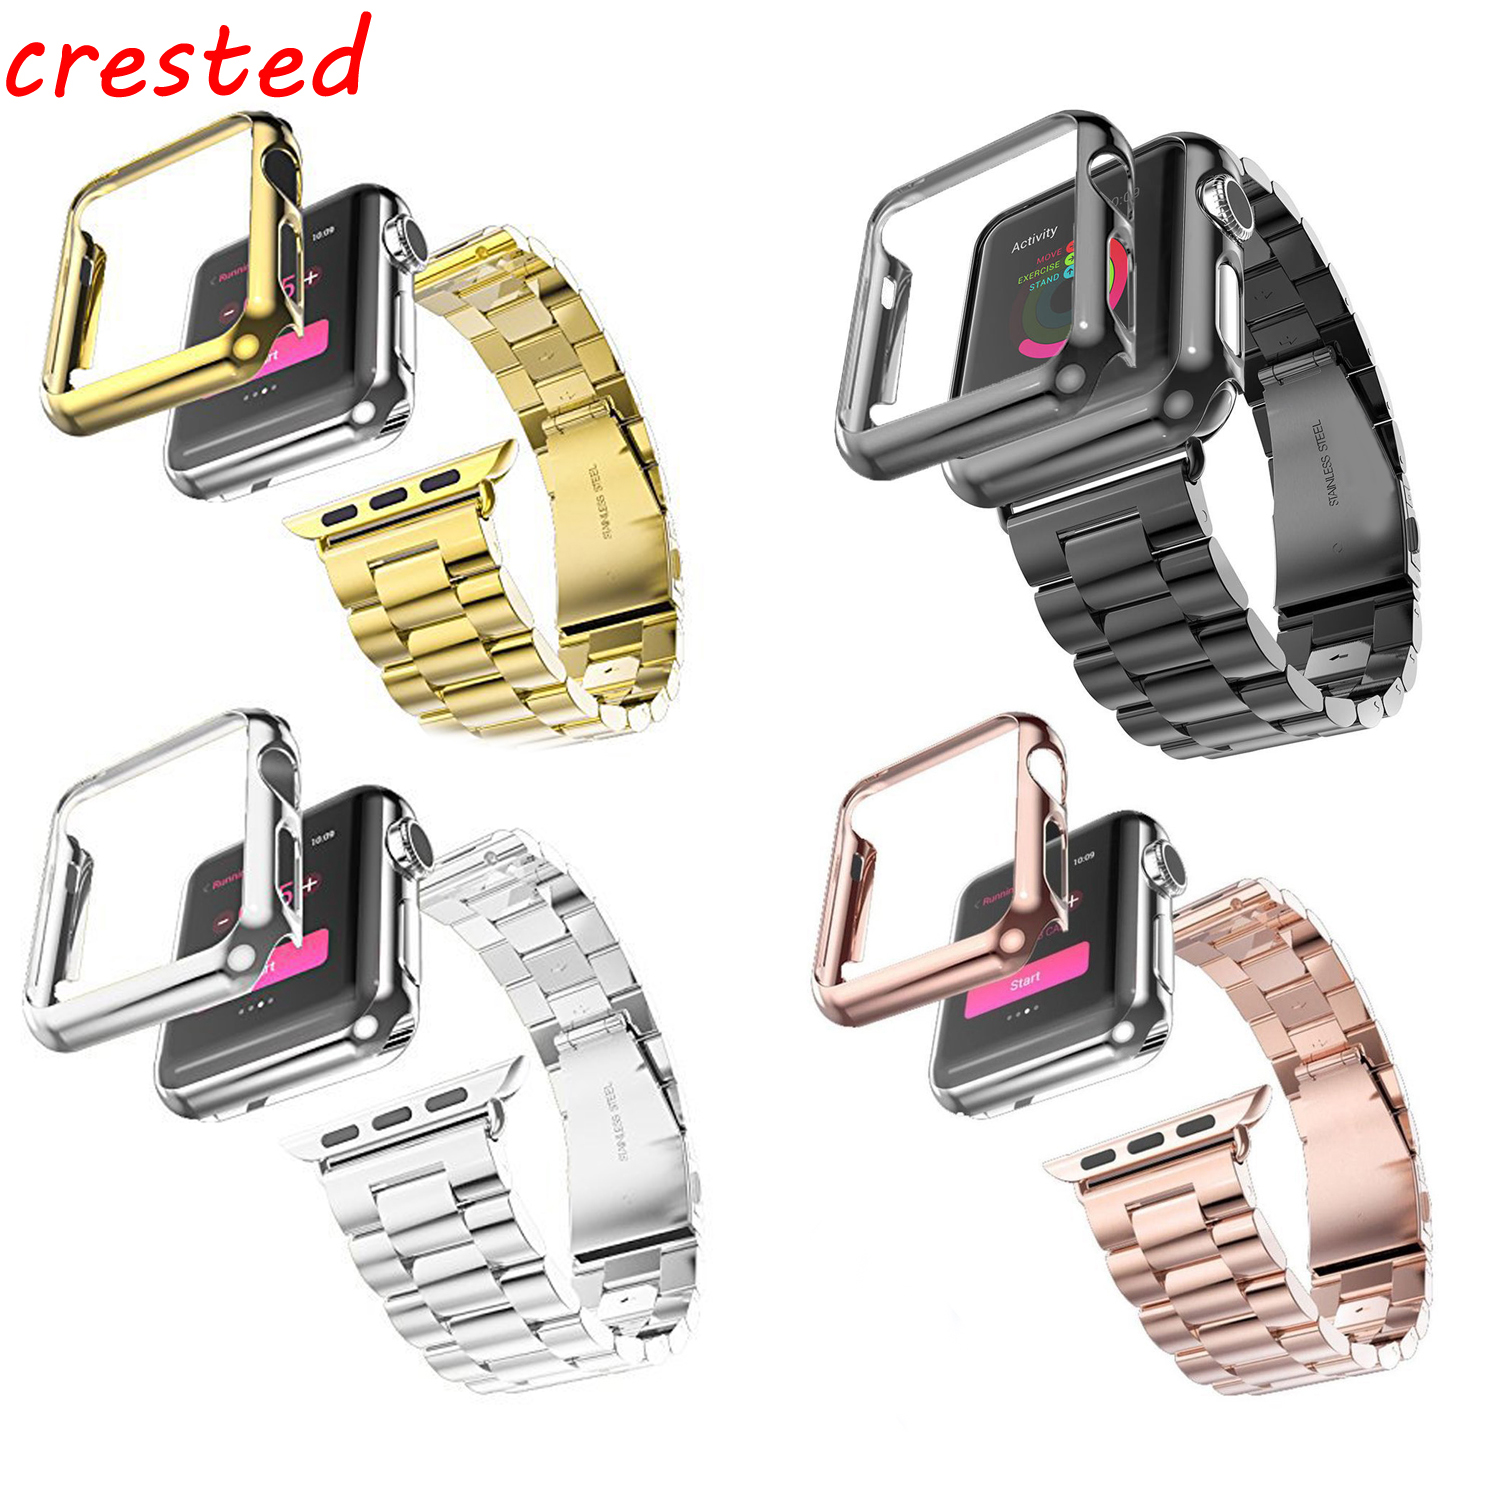 Stainless steel strap+case for apple watch band 42mm 38mm link bracelet metal belt watchband+for iwatch band Adjust Repair Tool new arrival diamond stainless steel band for apple watch band strap link bracelet 38mm 42mm smart watch metal band for iwatch